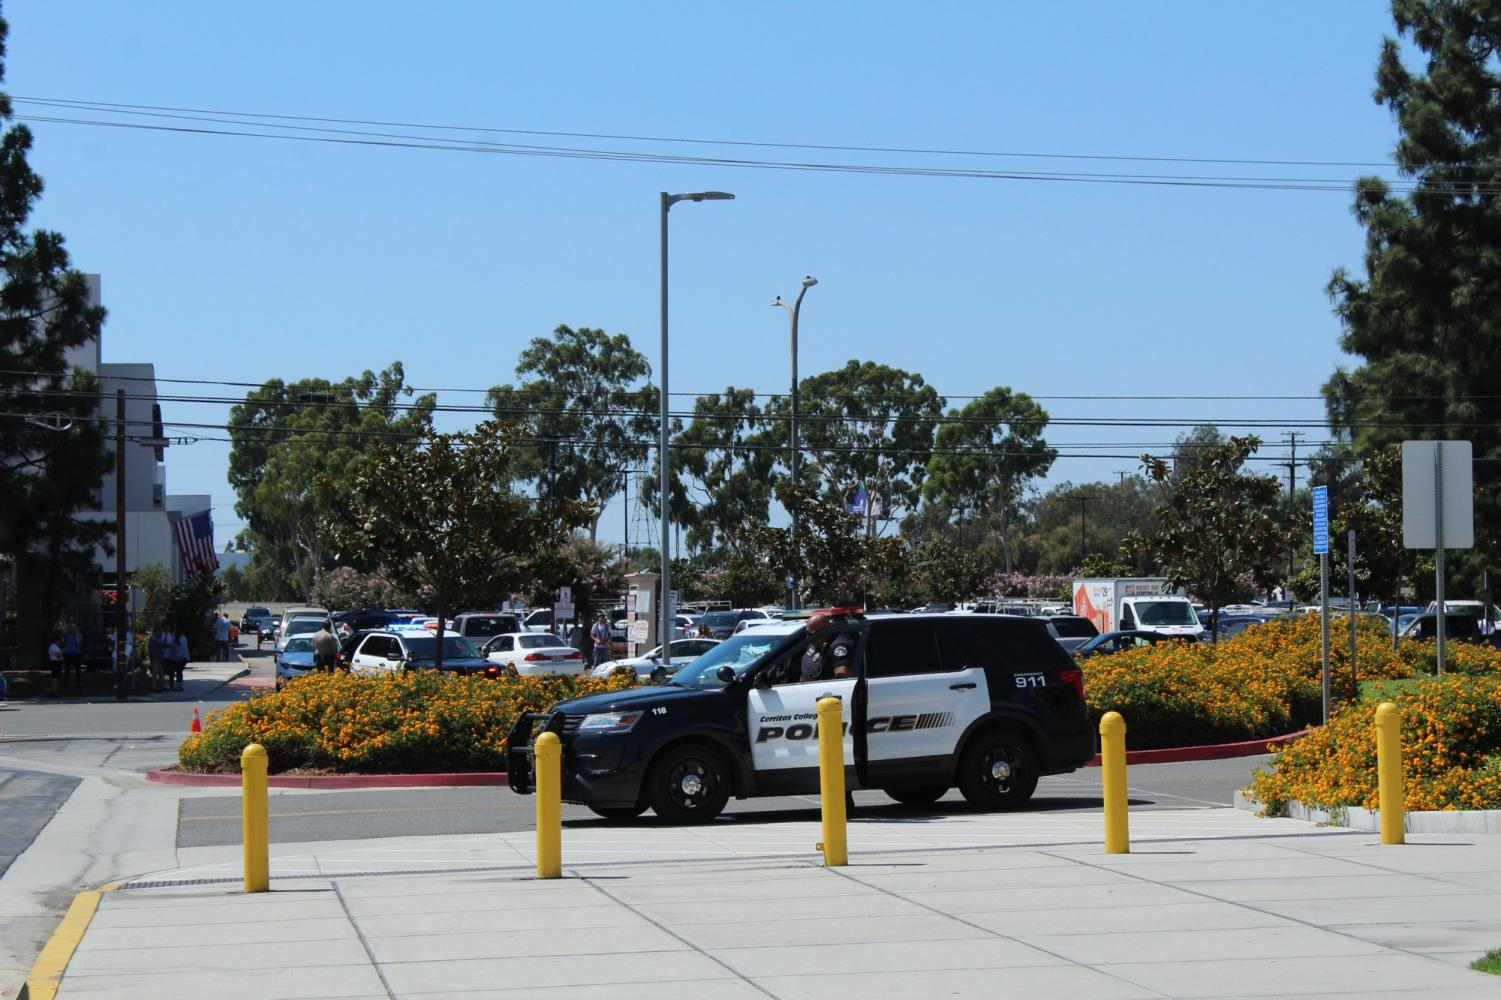 Campus closed following a potential bomb threat, suspect is in custody